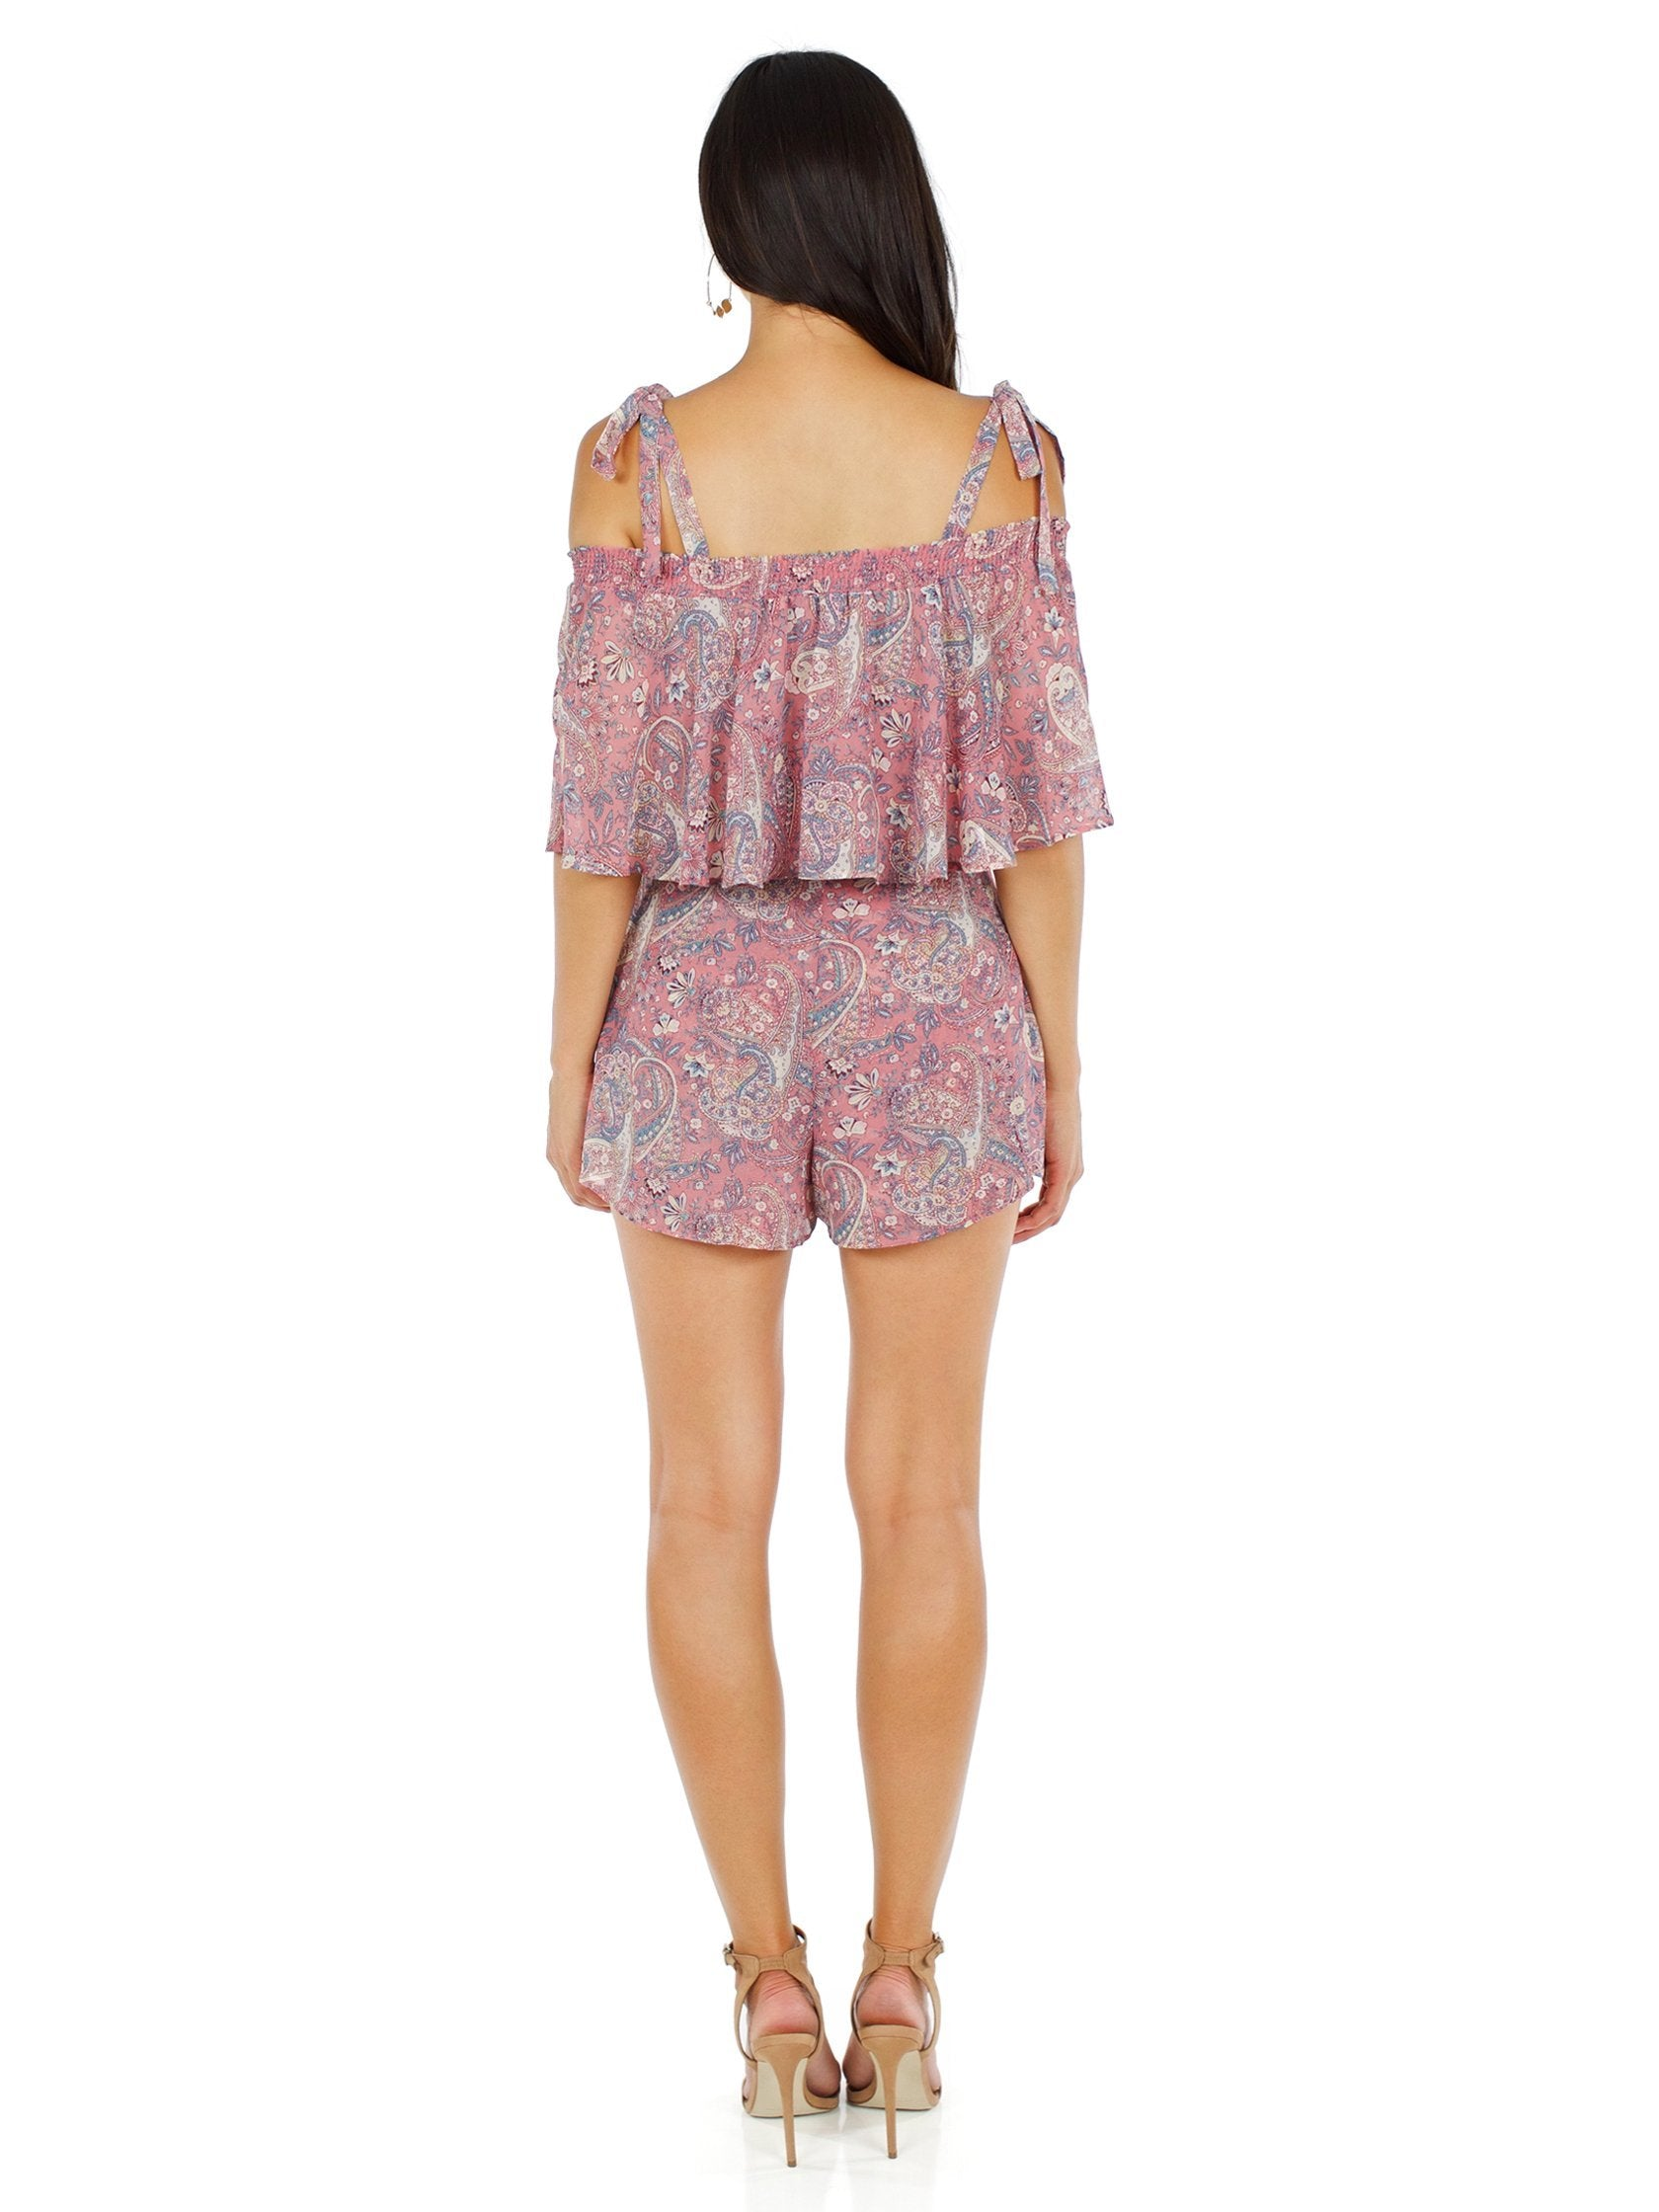 Women outfit in a top rental from Show Me Your Mumu called Nini Tie Top & Great Wrap Skort Set